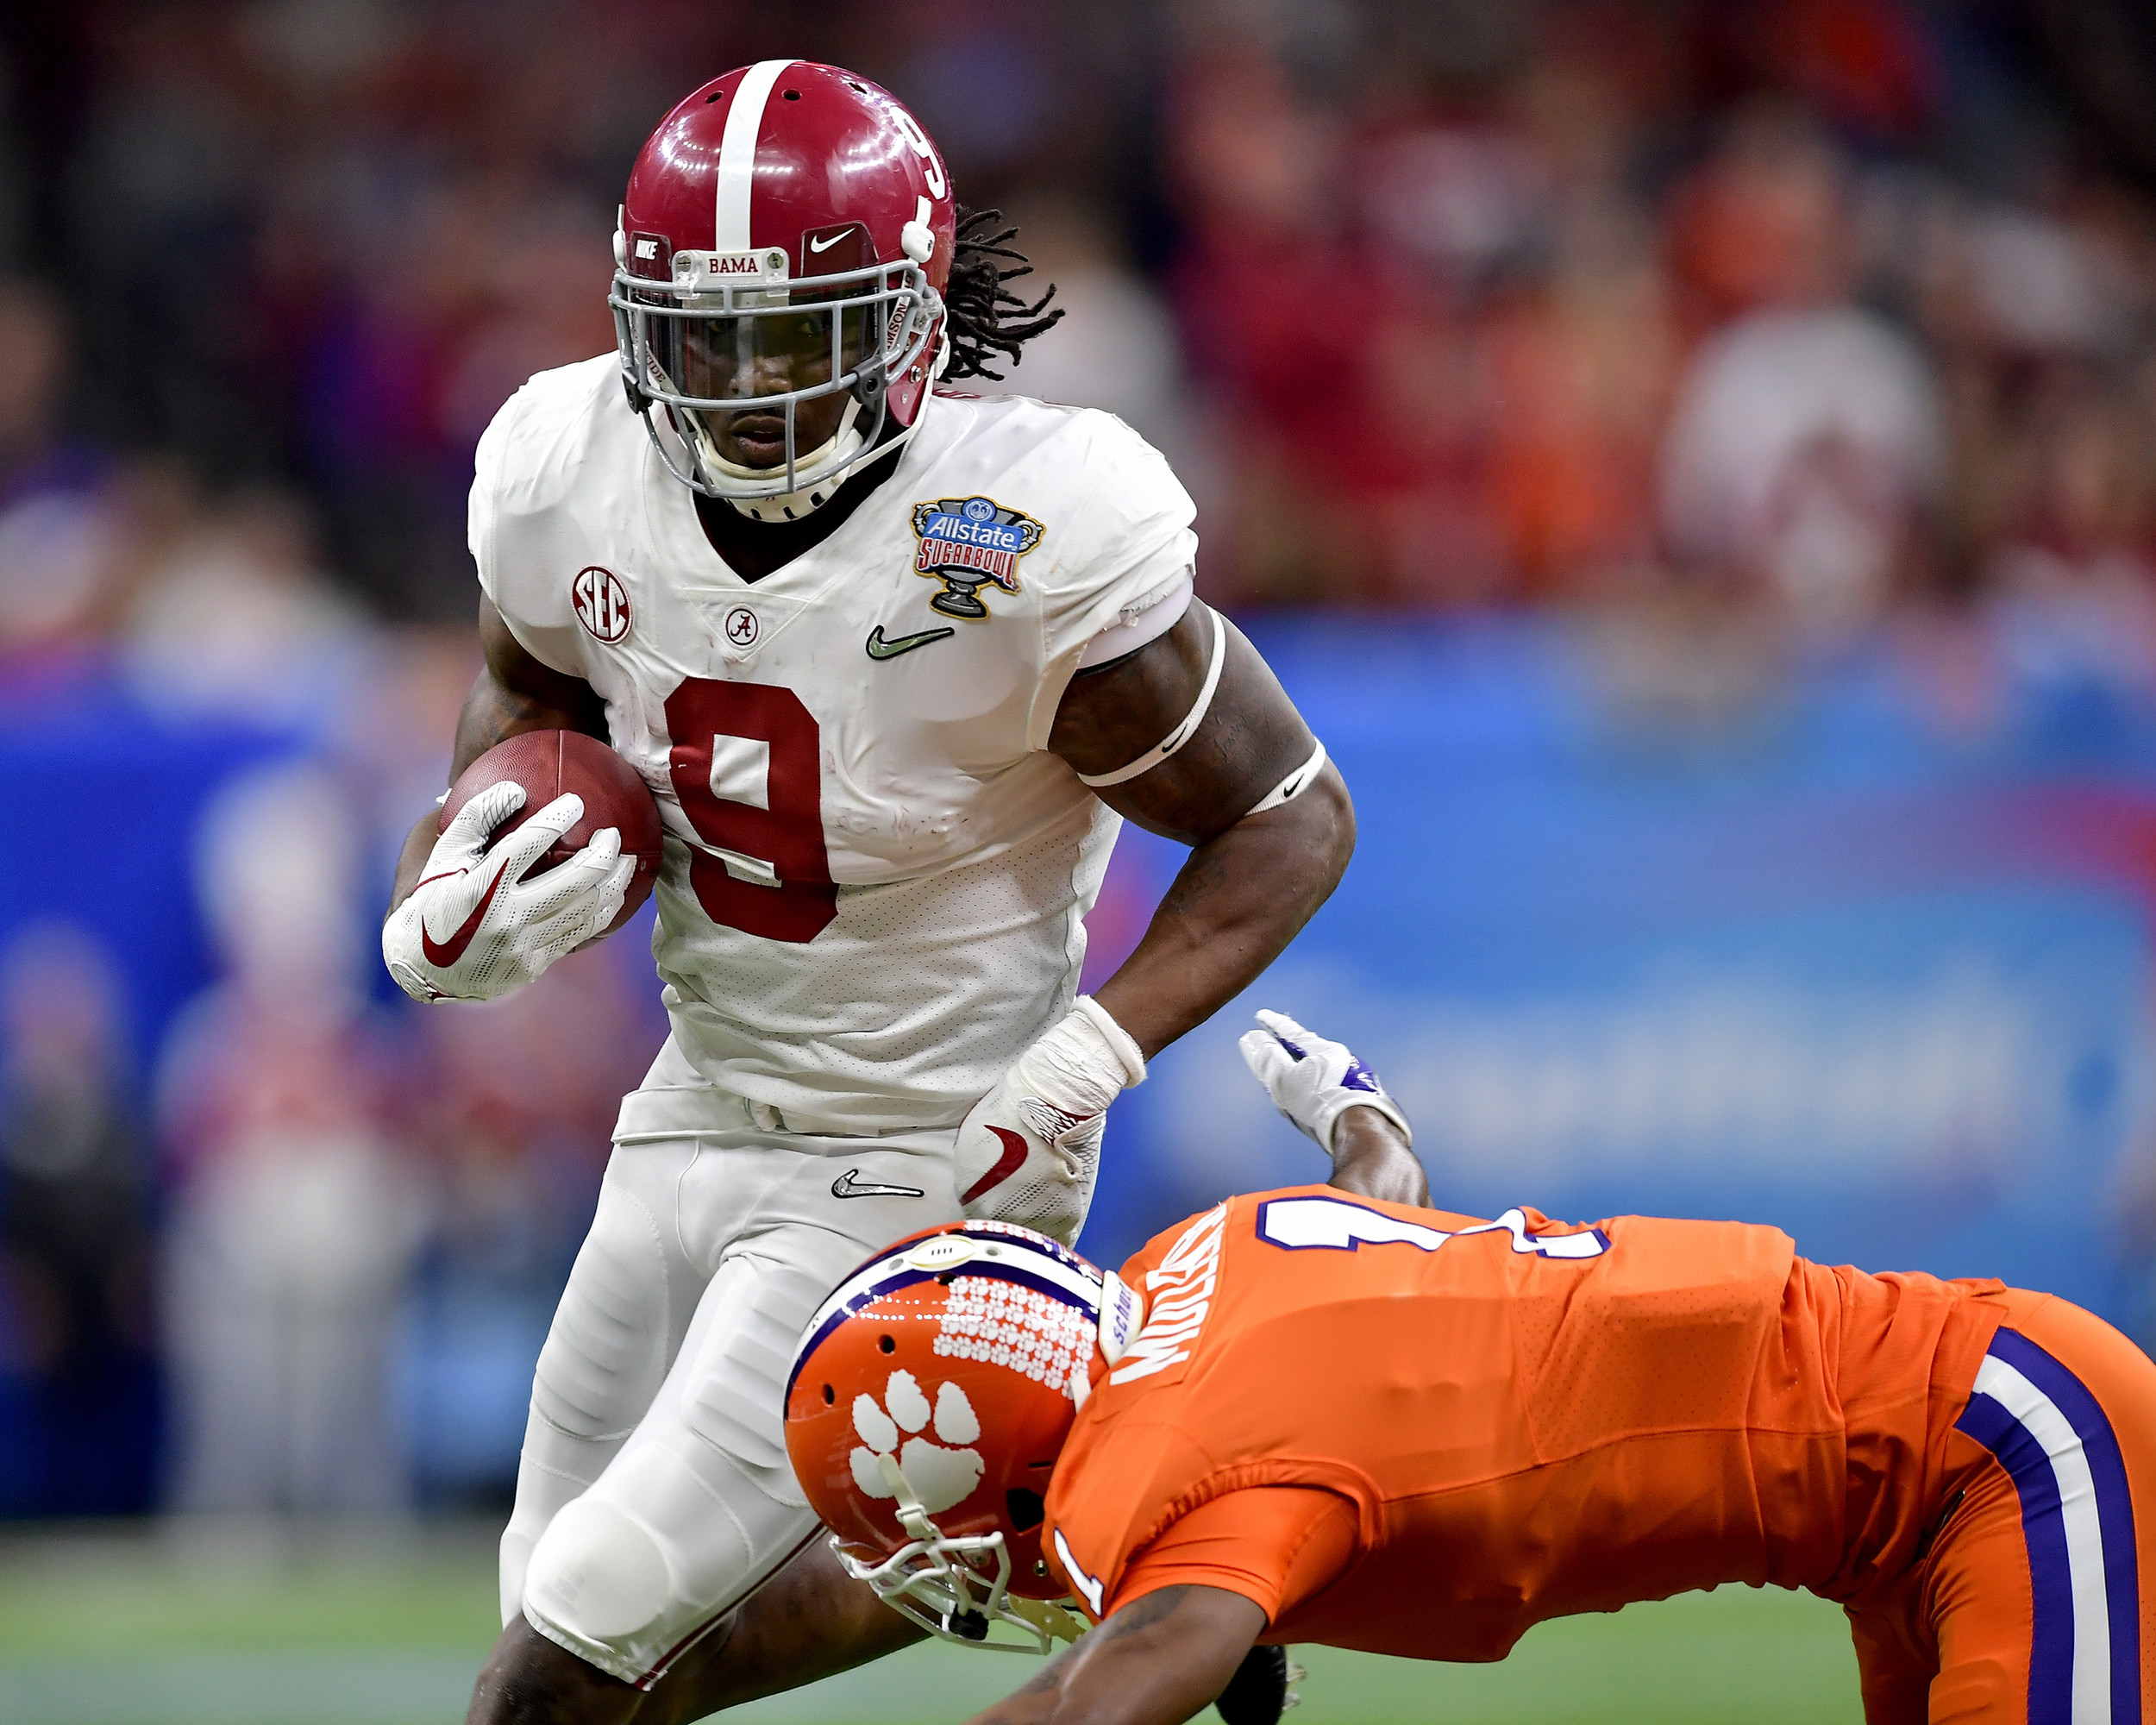 Alabama Crimson Tide running back Bo Scarbrough (9) with a carry in the second quarter of the 2018 AllState Sugar Bowl on Jan. 1, 2018, at the Mercedes-Benz SuperDome in New Orleans, La. Alabama won the game 24-6. (Photo by Lee Walls)